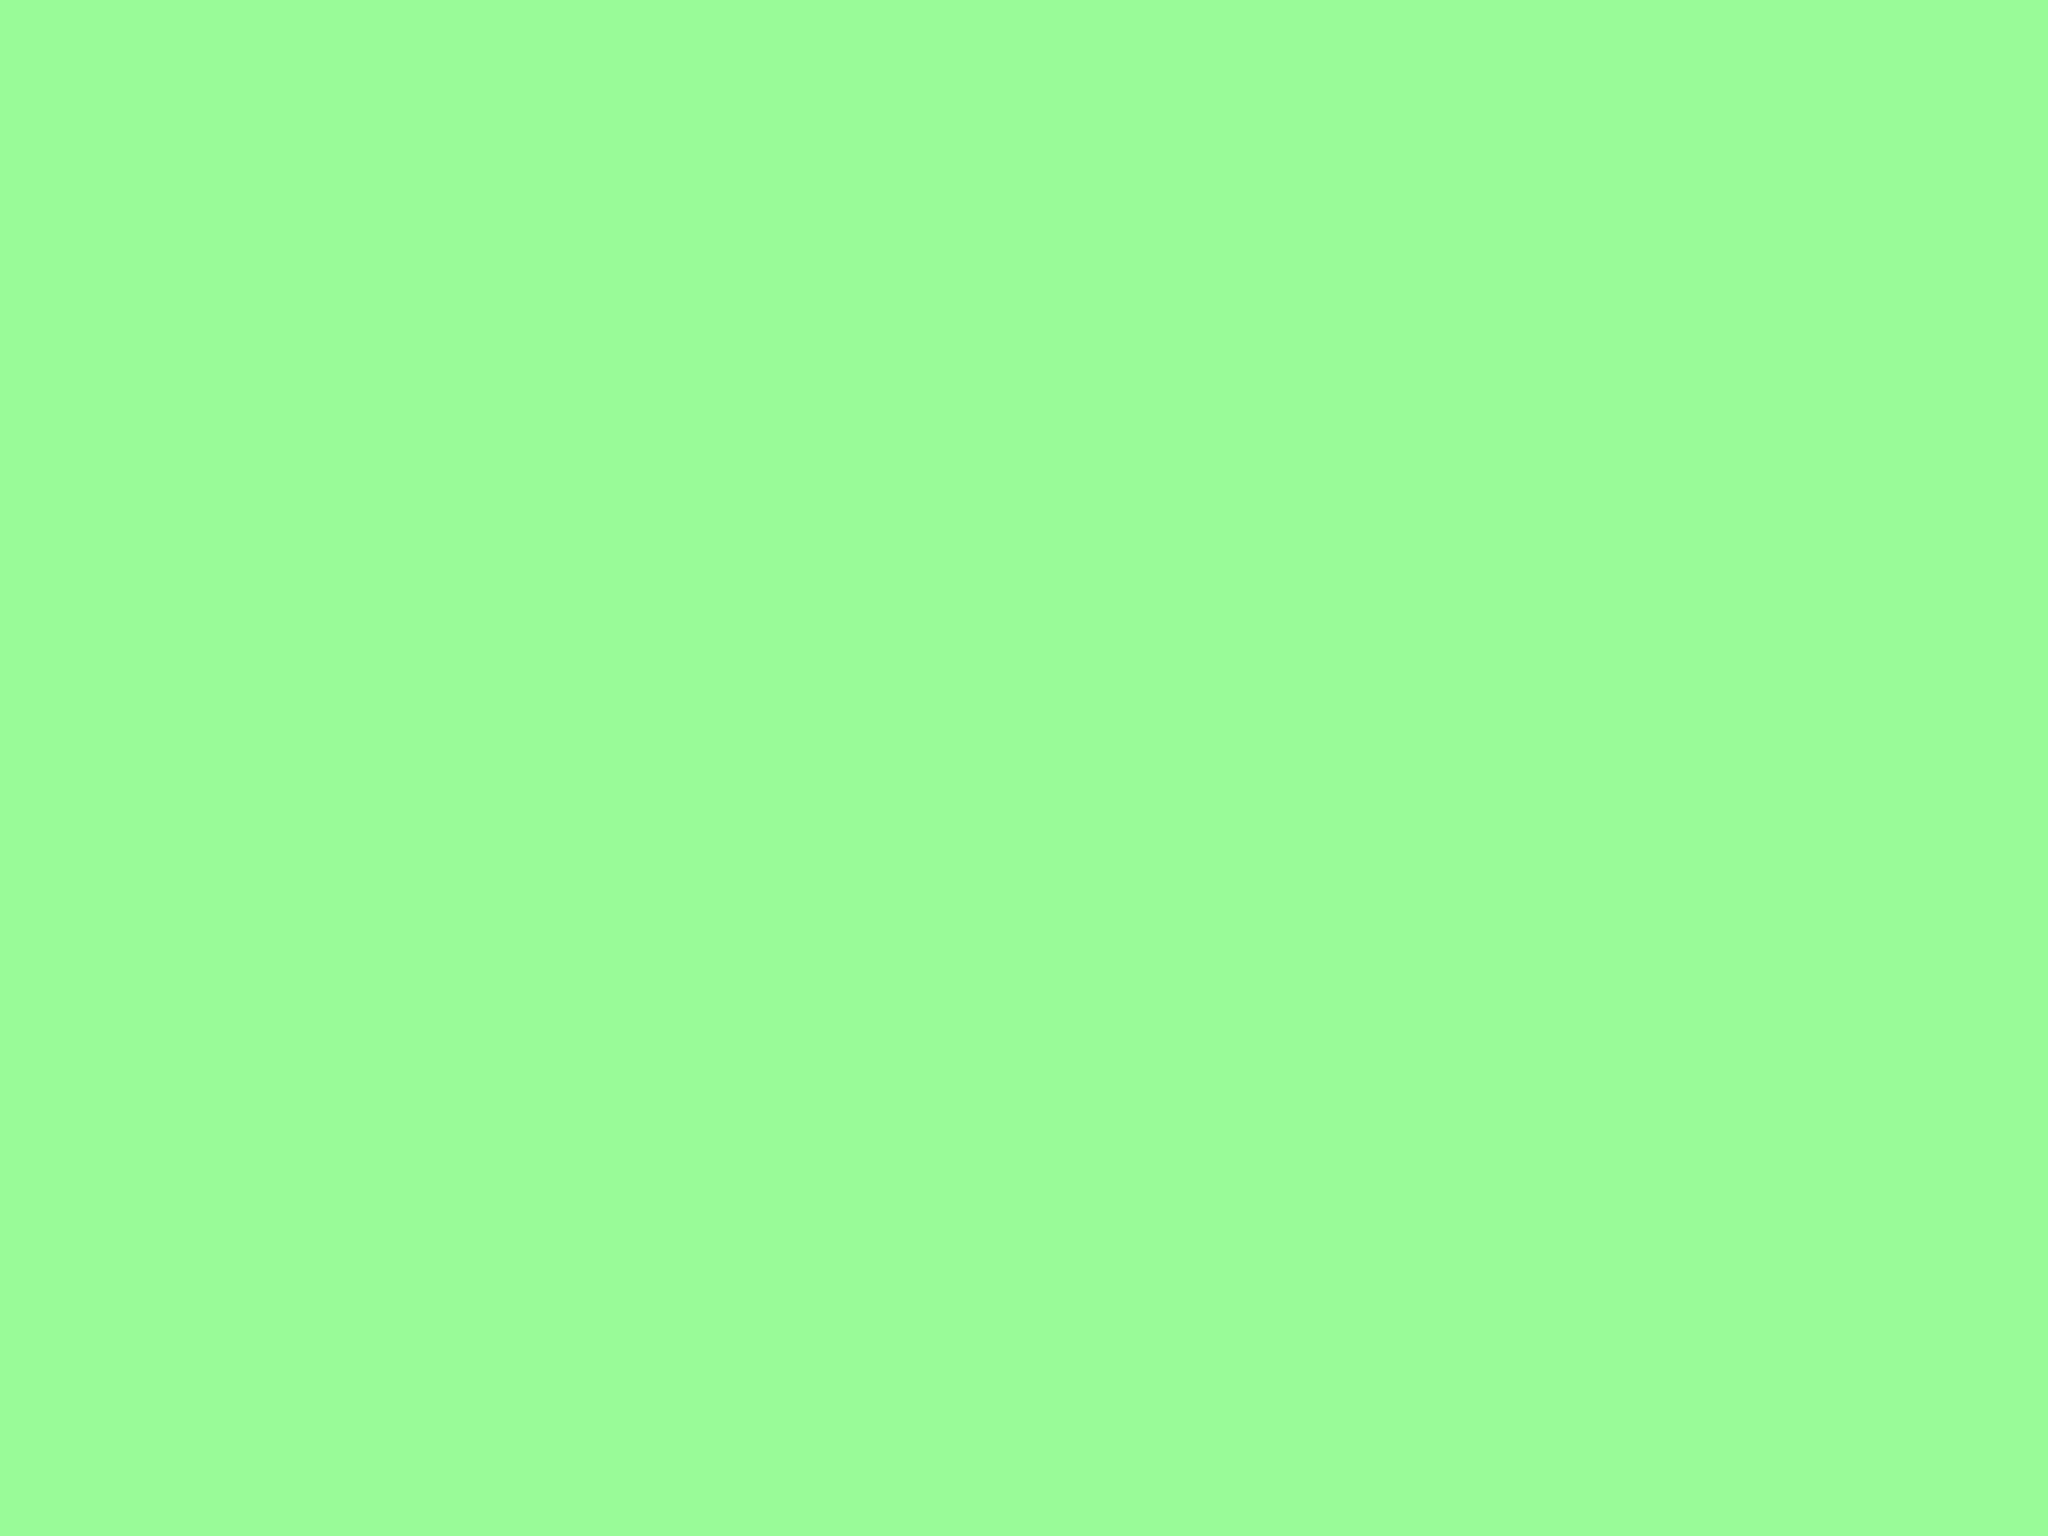 2048x1536 Pale Green Solid Color Background